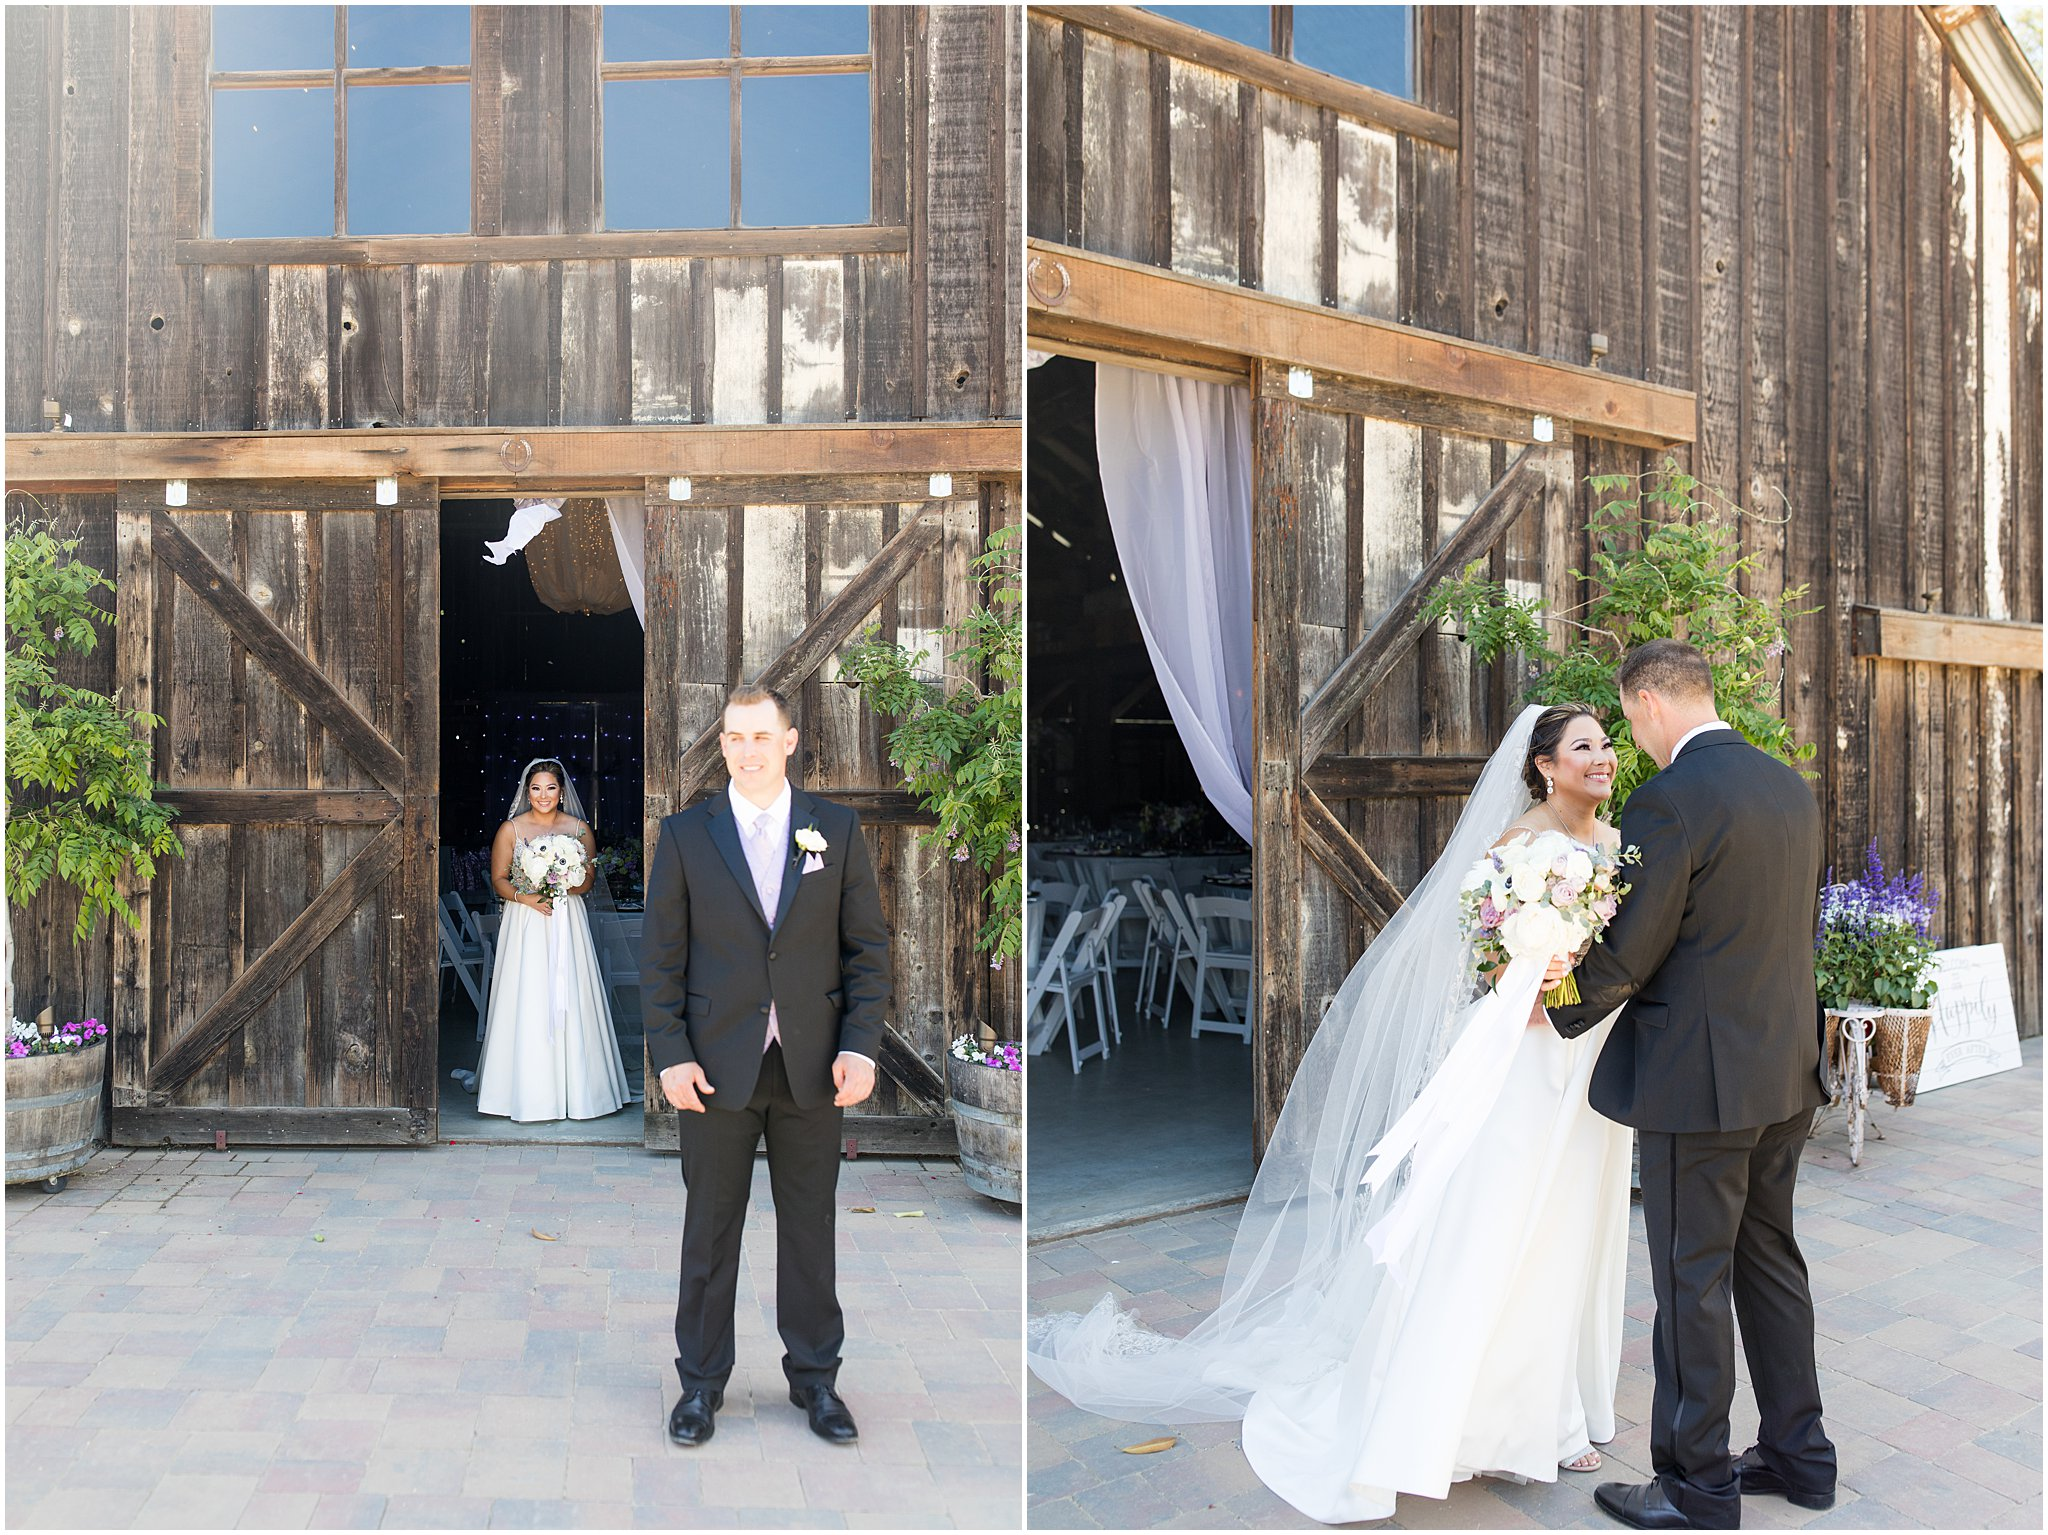 2019 wedding san juan bautista hacienda de leal vineyards bay area wedding photographer_0017.jpg